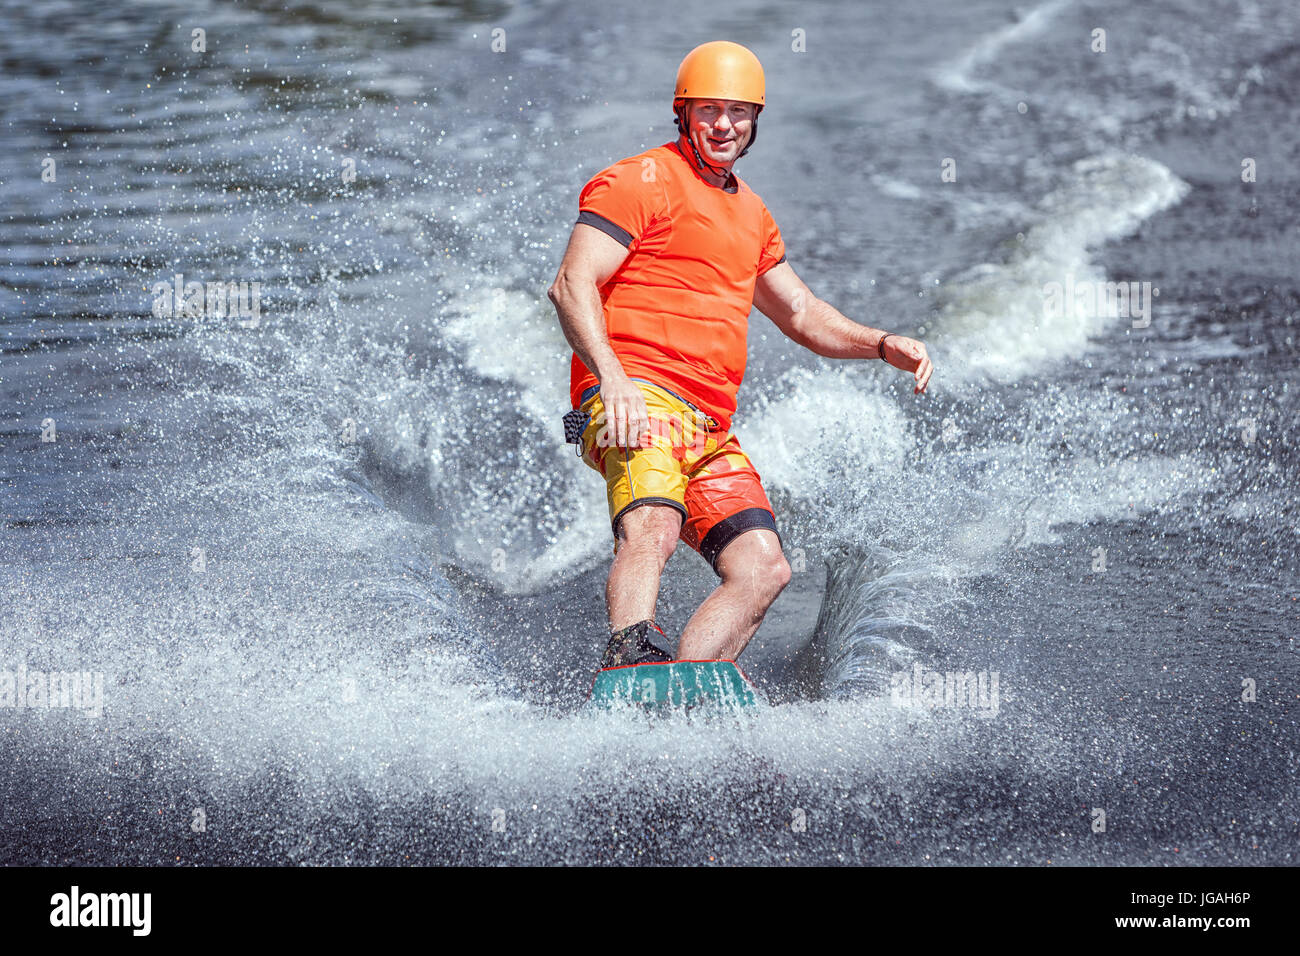 Surfing the waves on the wakeboard. Extreme sports. - Stock Image